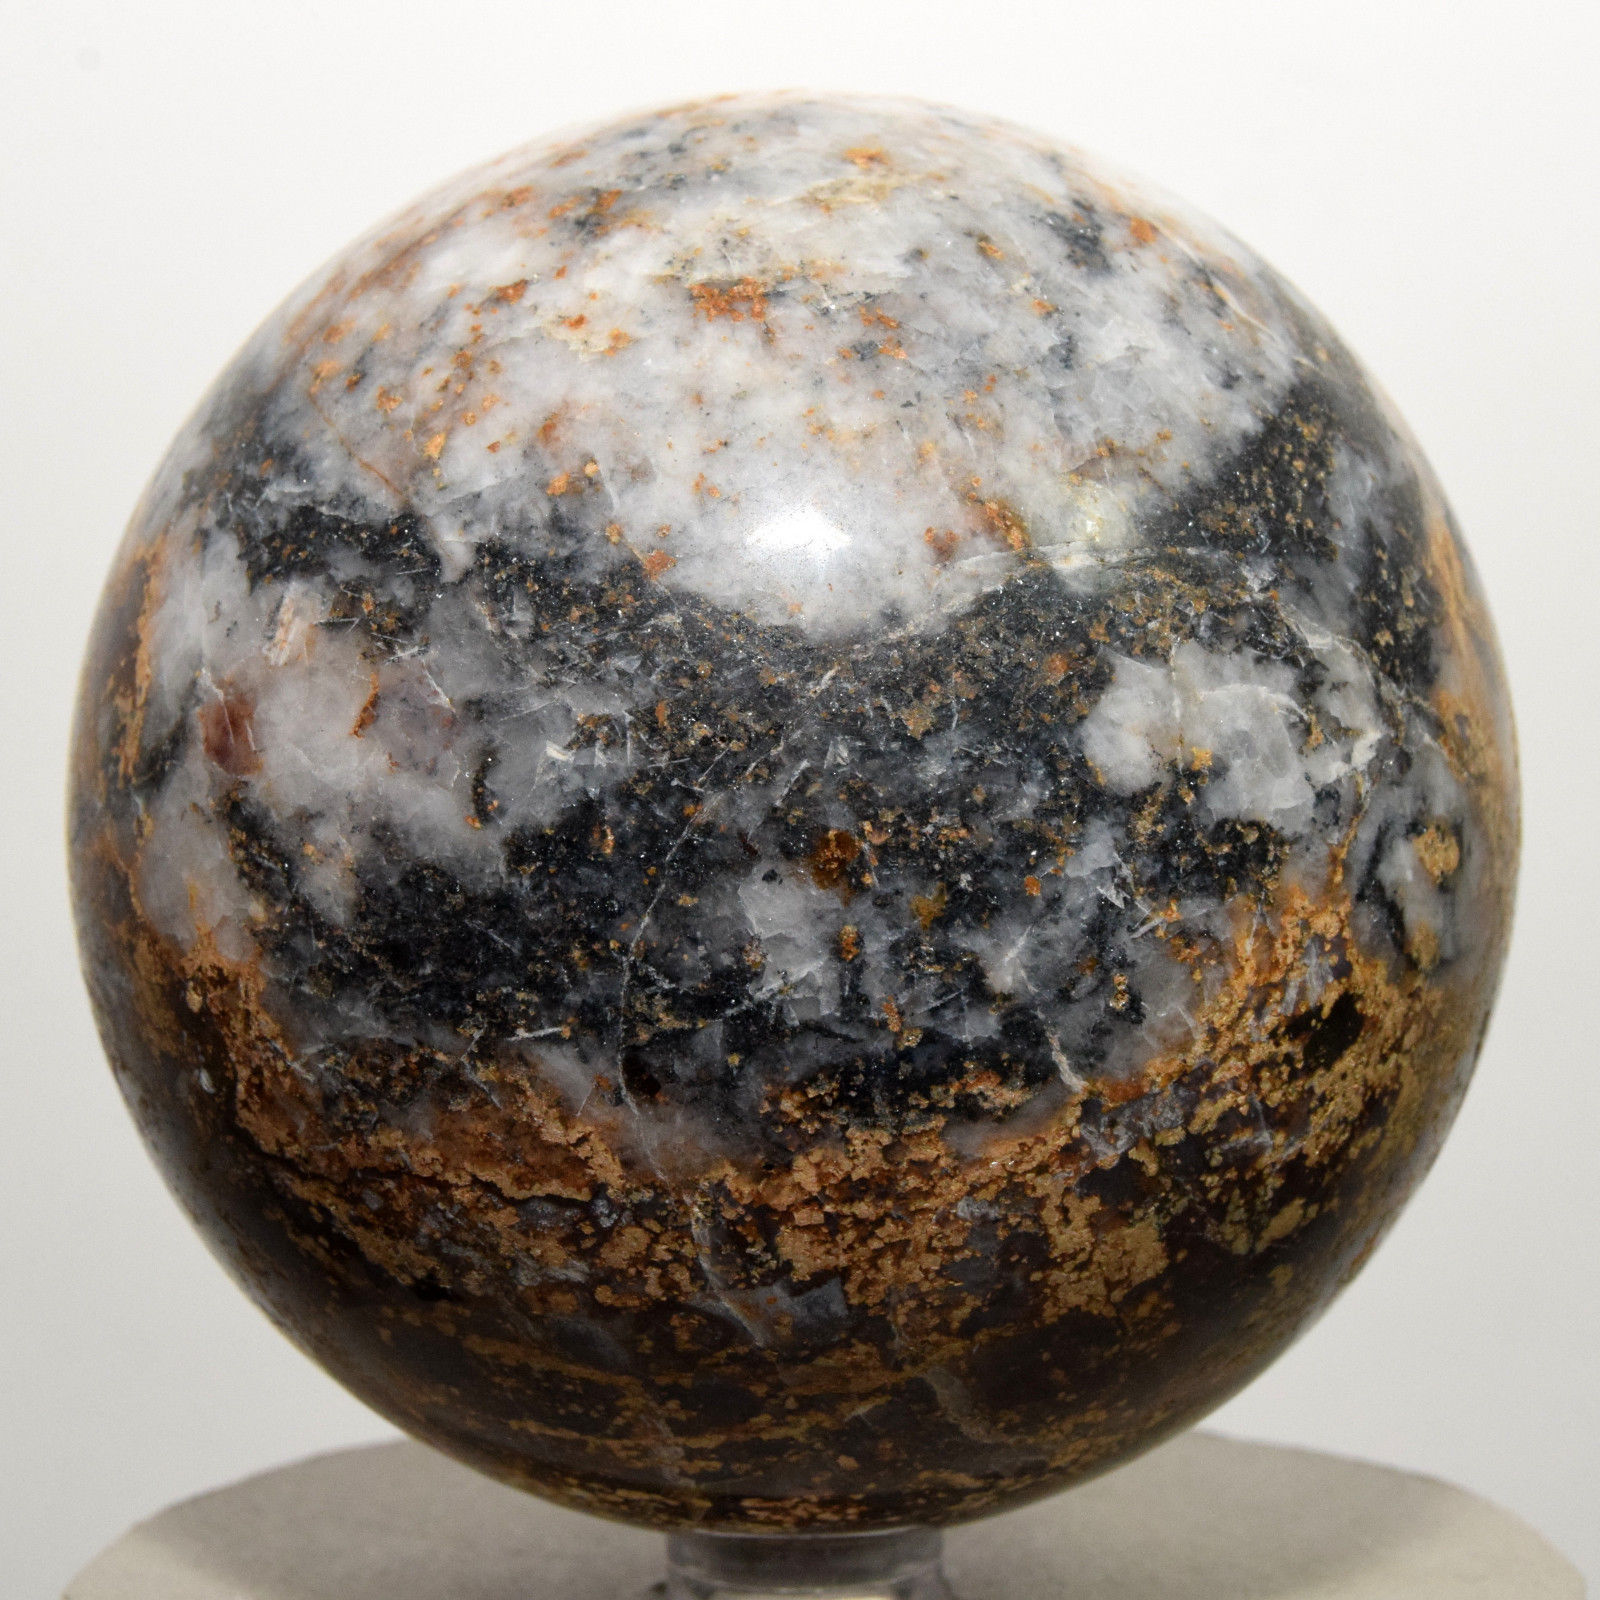 Red Blue Stone : Quot blue orange red pietersite sphere natural chatoyant